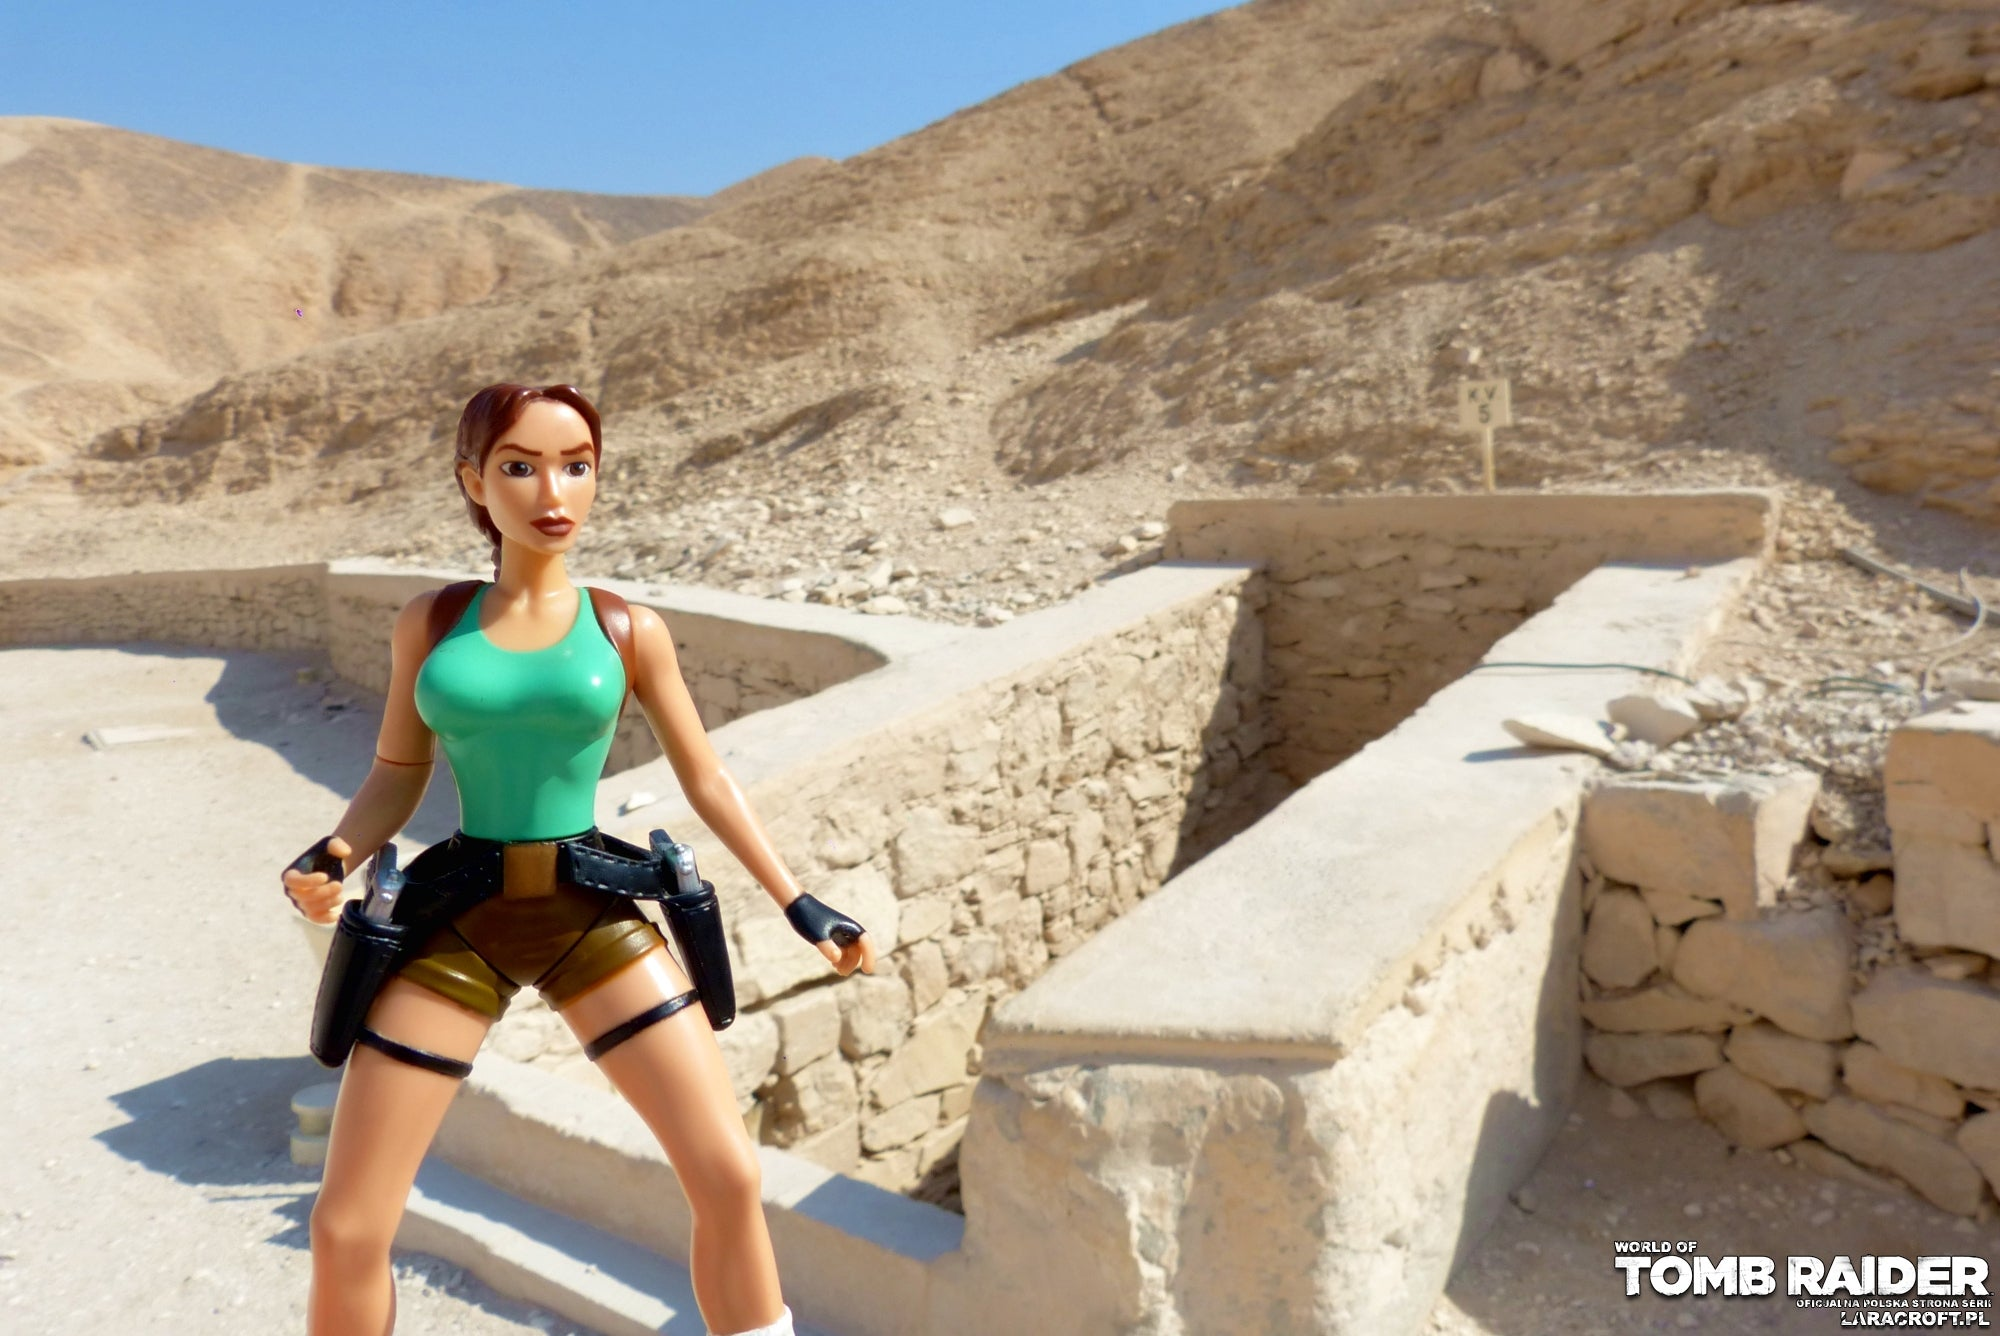 A photograph of a Lara Croft figure in front of ruins in Egypt